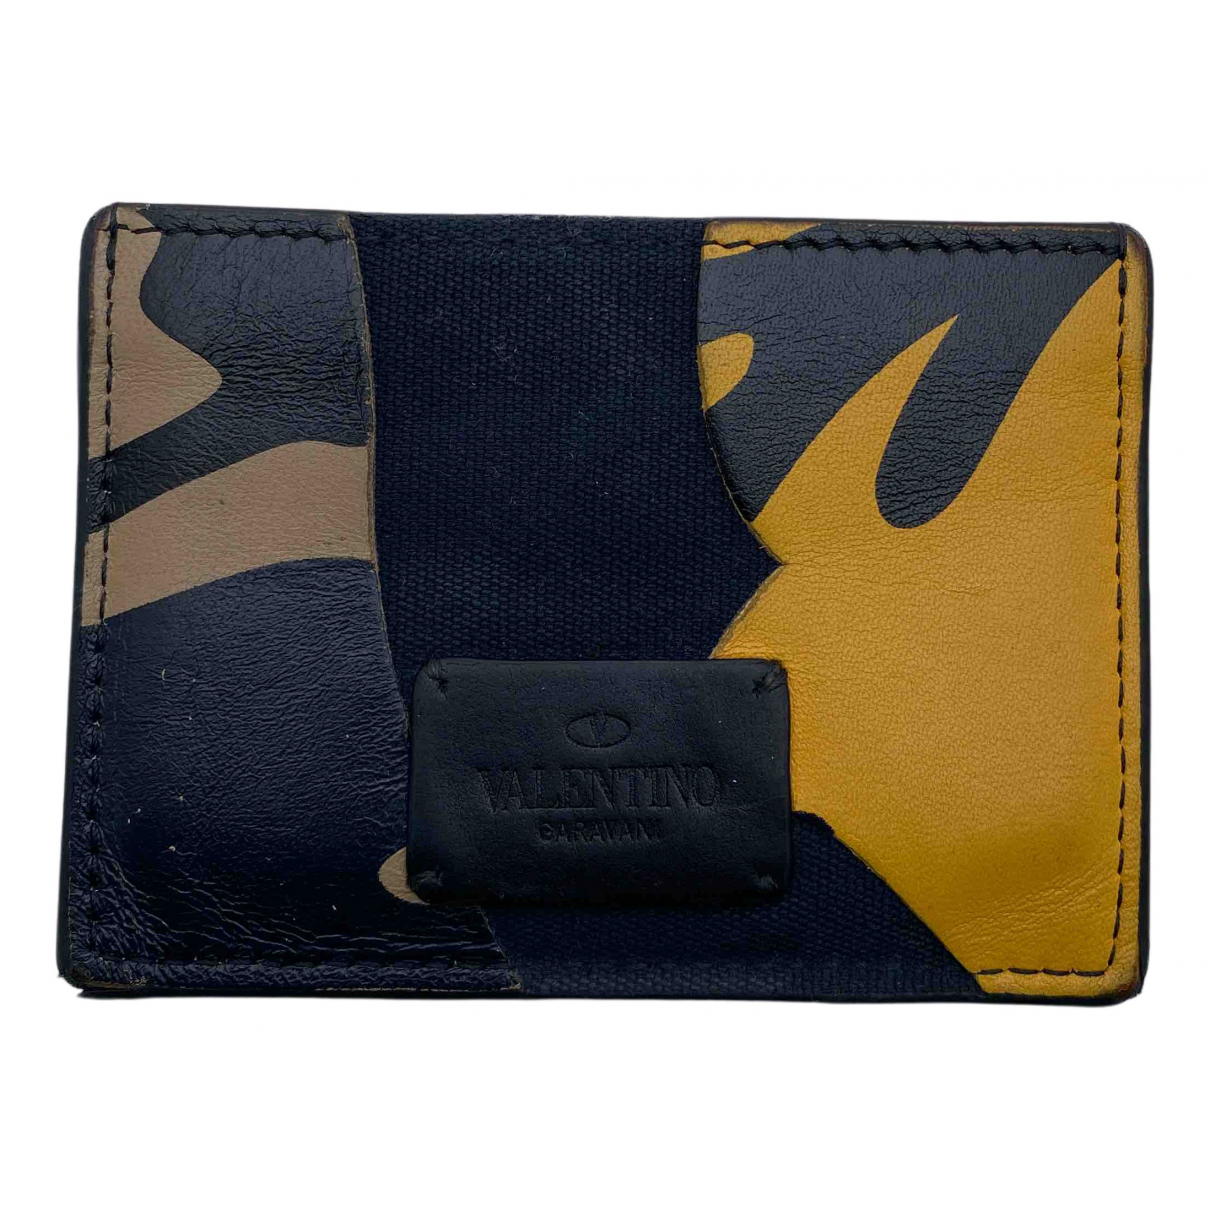 Valentino Garavani N Multicolour Leather Small bag, wallet & cases for Men N